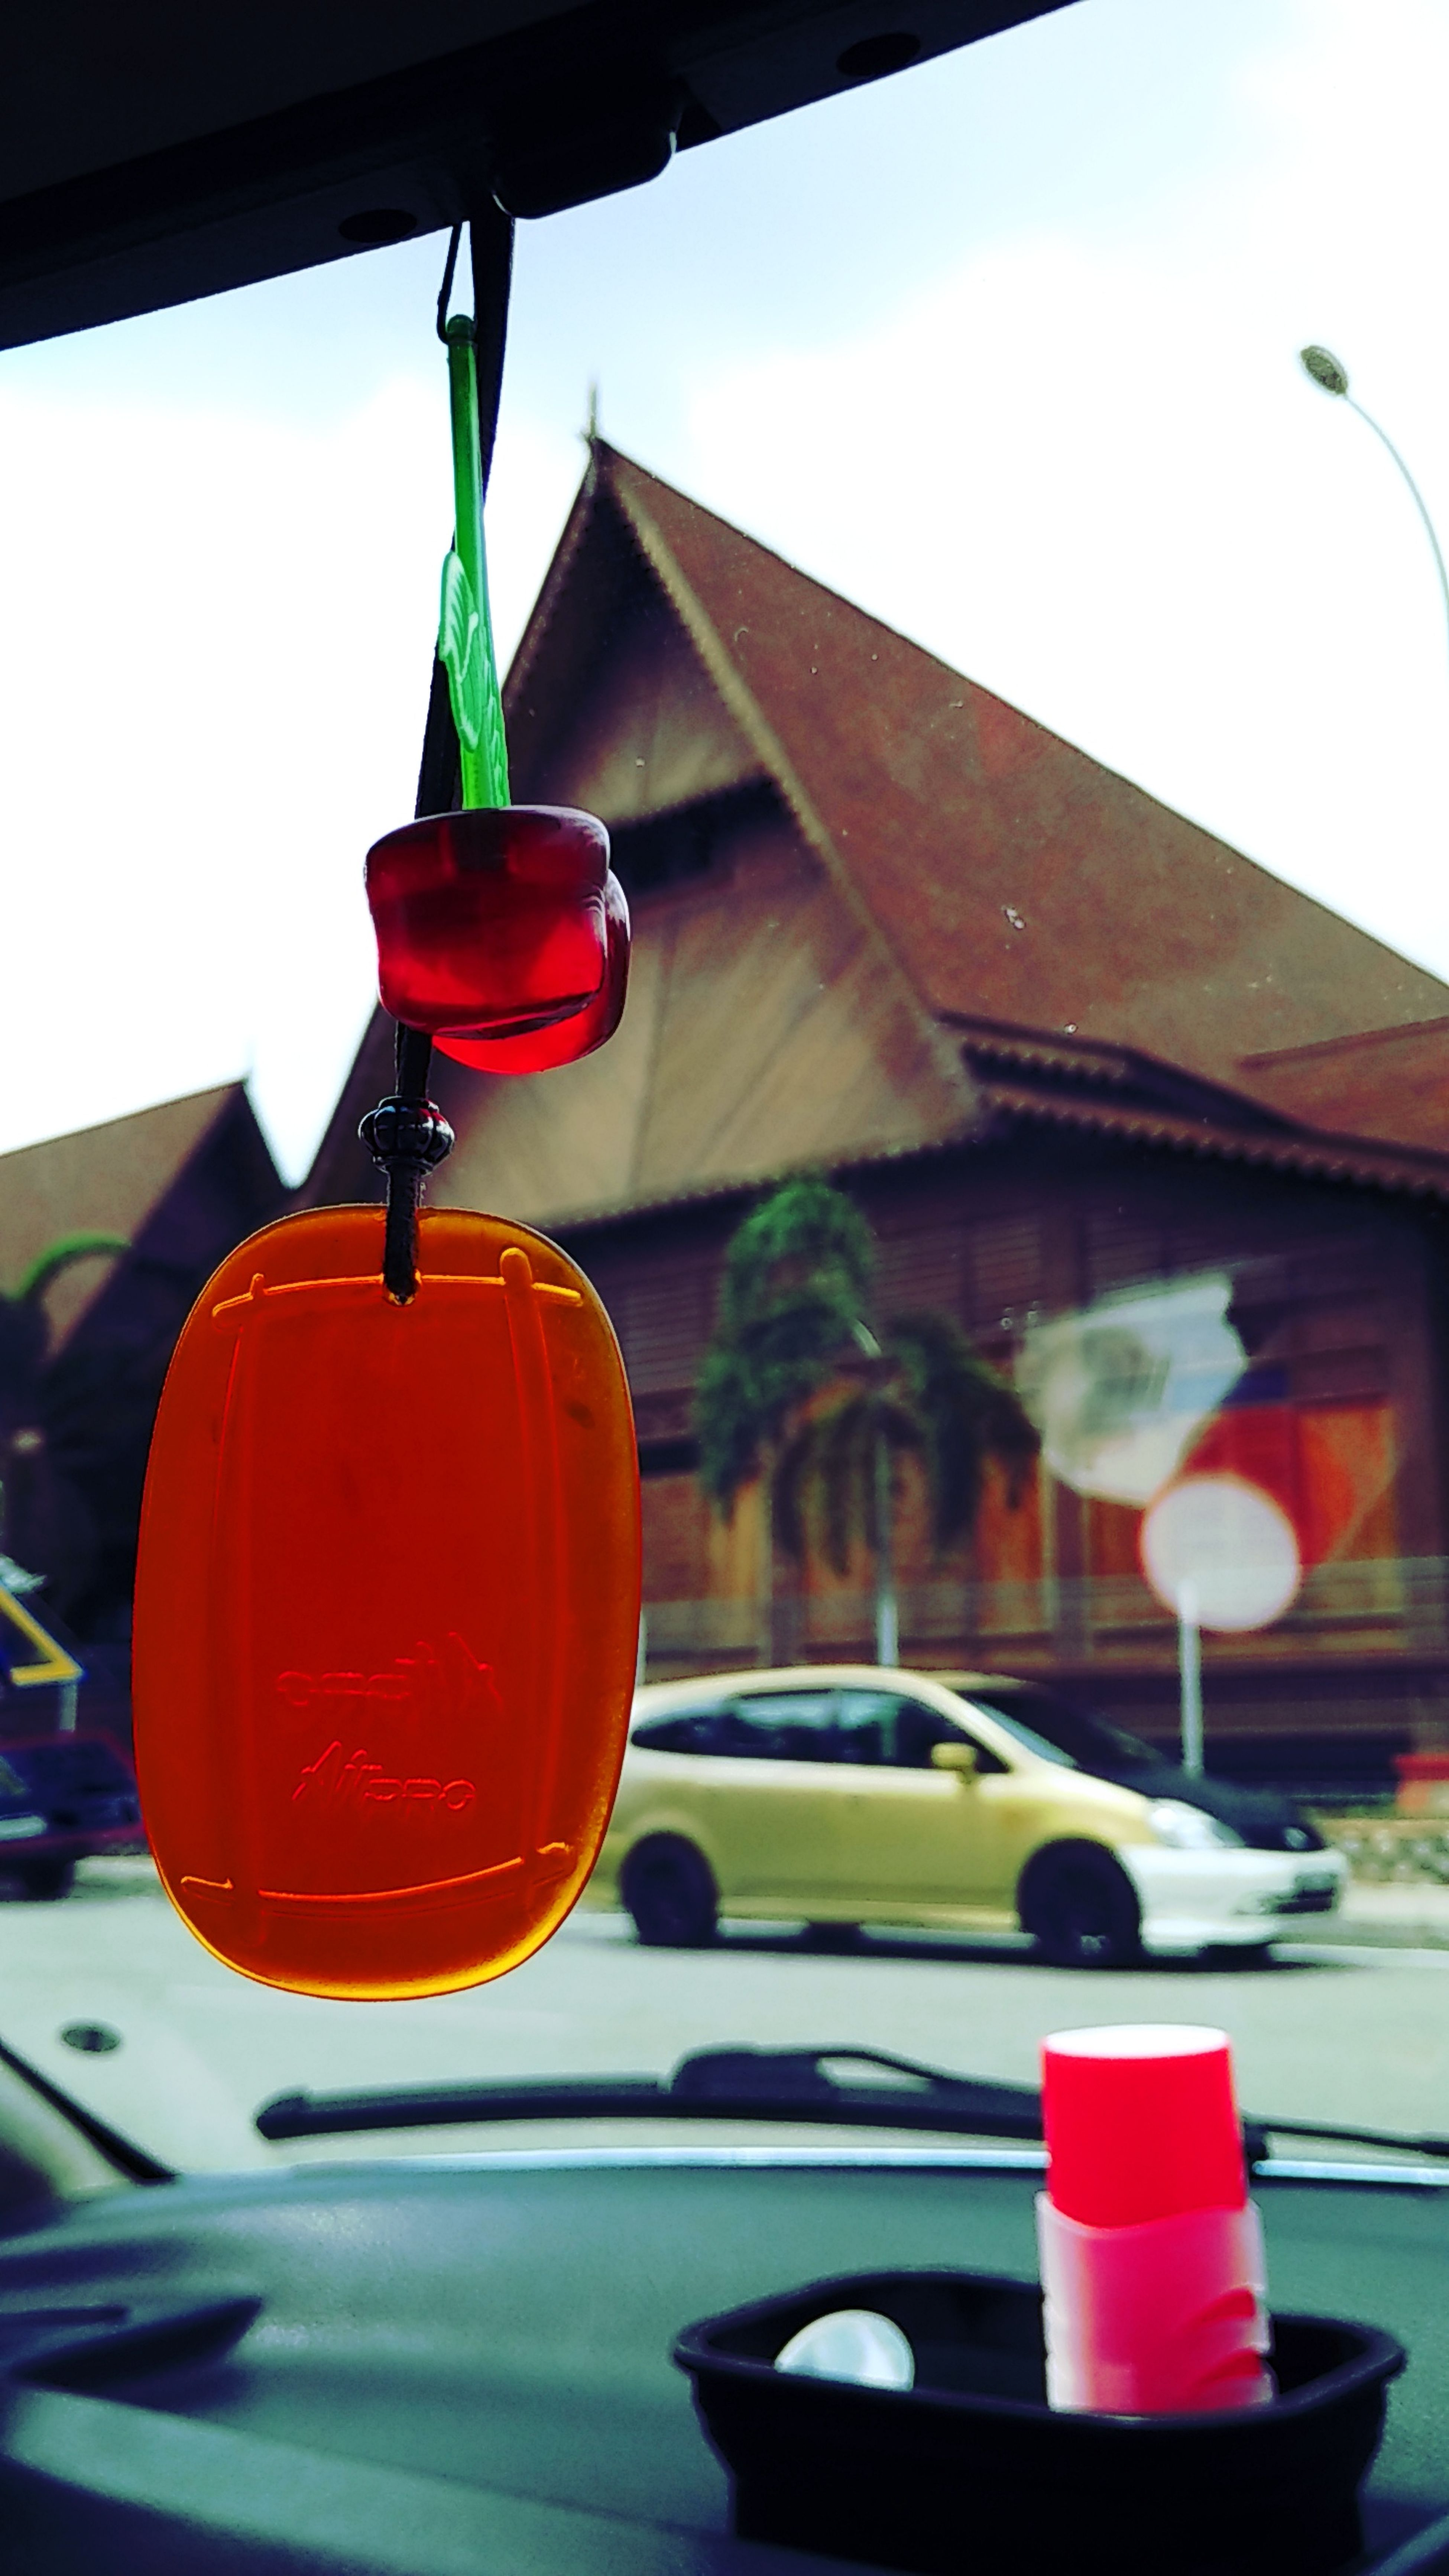 Car Fragrant, Car Close-up Day Transportation Red Outdoors Vehicle Mirror